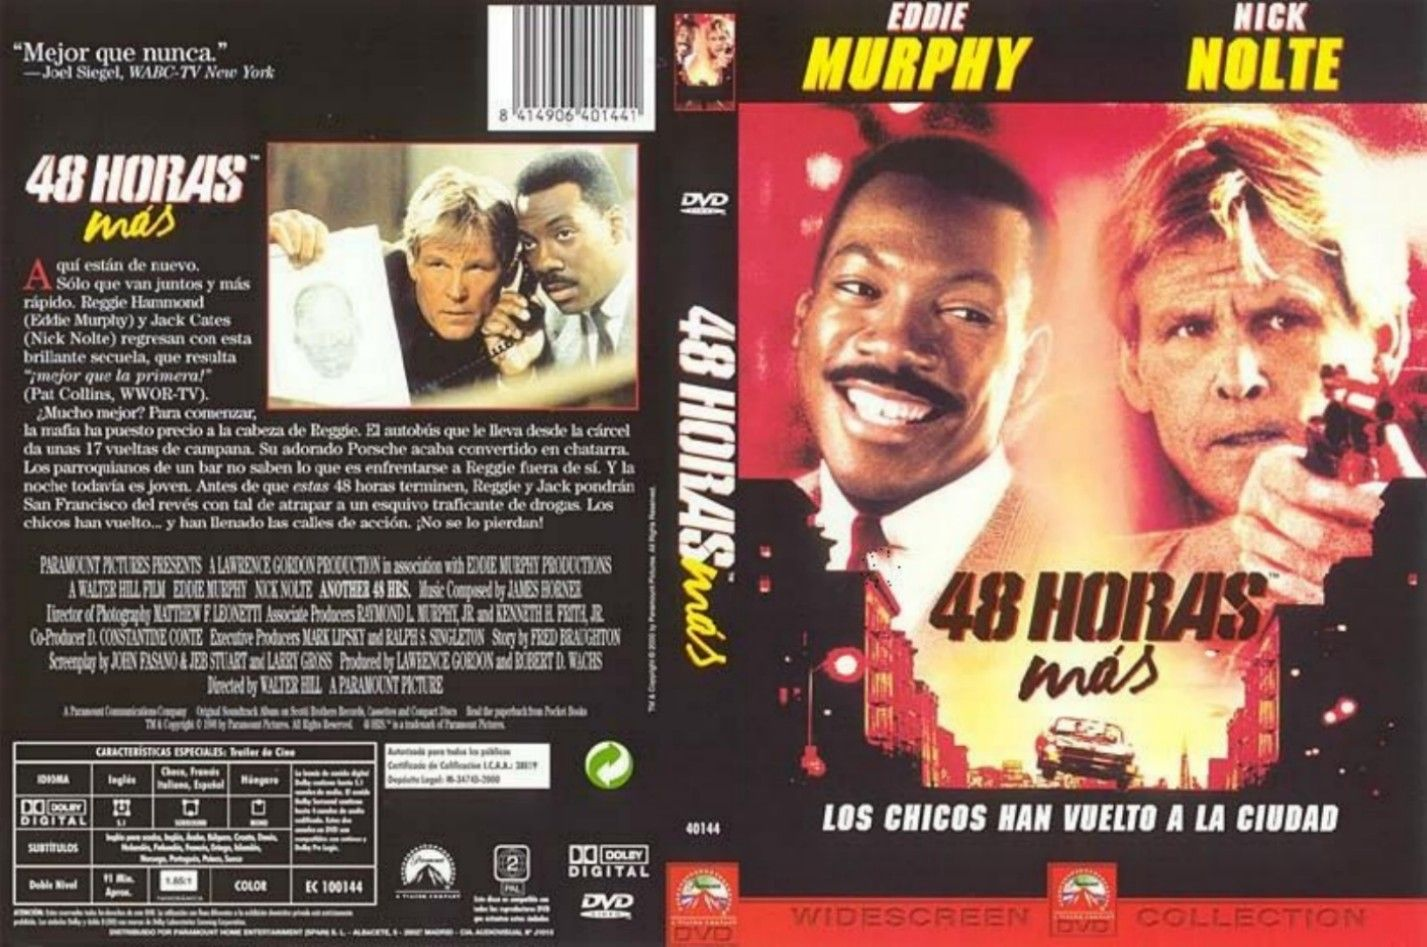 48 Horas más | 1990 | Another 48 Hours | Cover, caratula, dvd